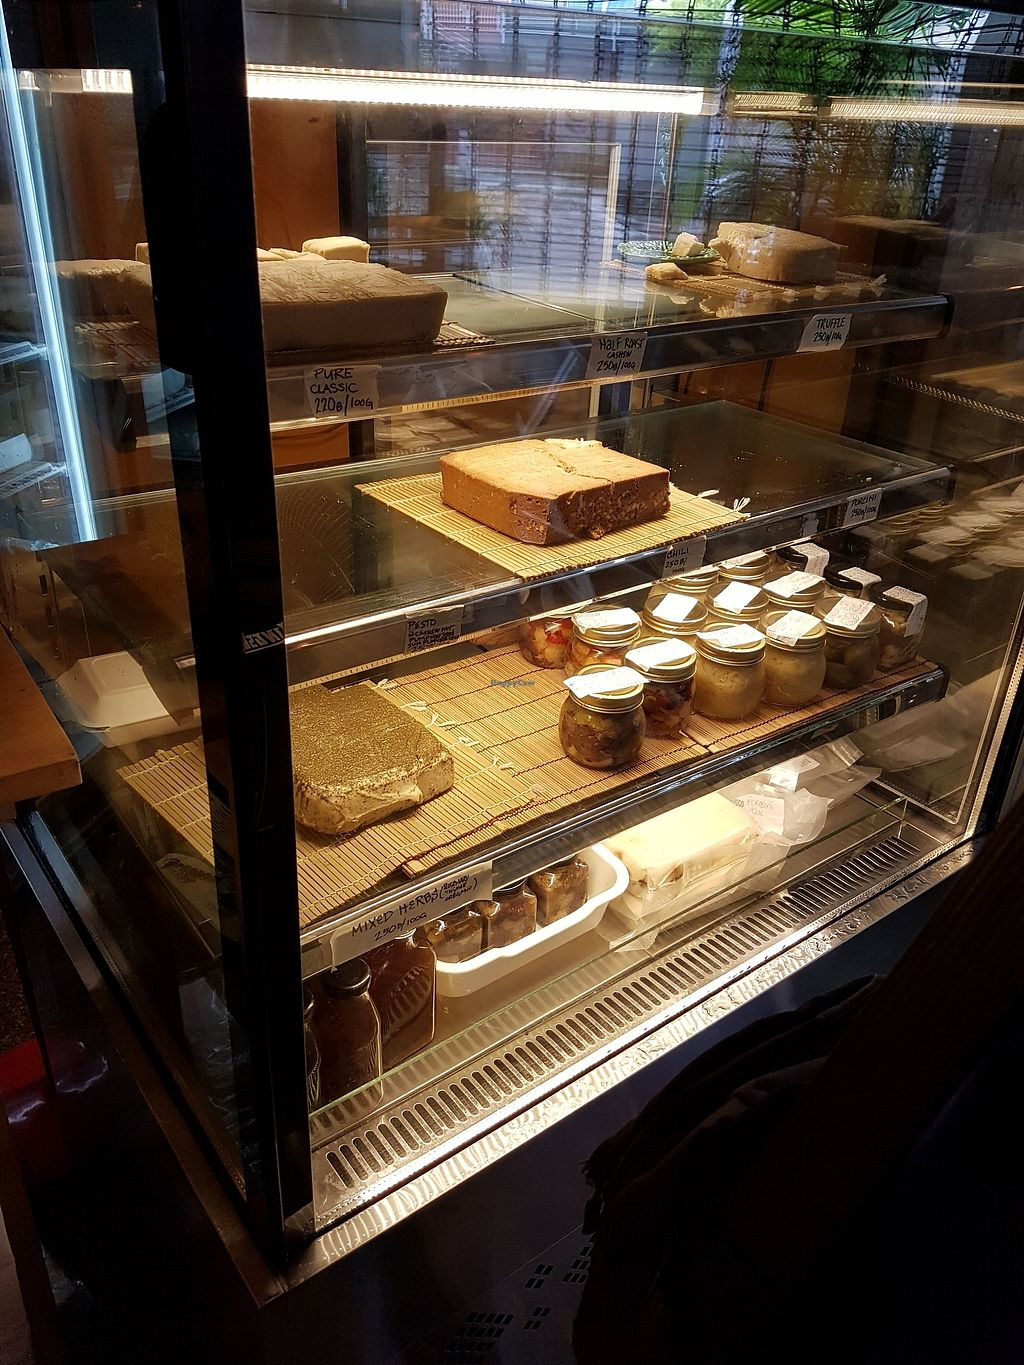 "Photo of BarefoodBangkok  by <a href=""/members/profile/vfantasy"">vfantasy</a> <br/>Vegan cheese inside chilled storage